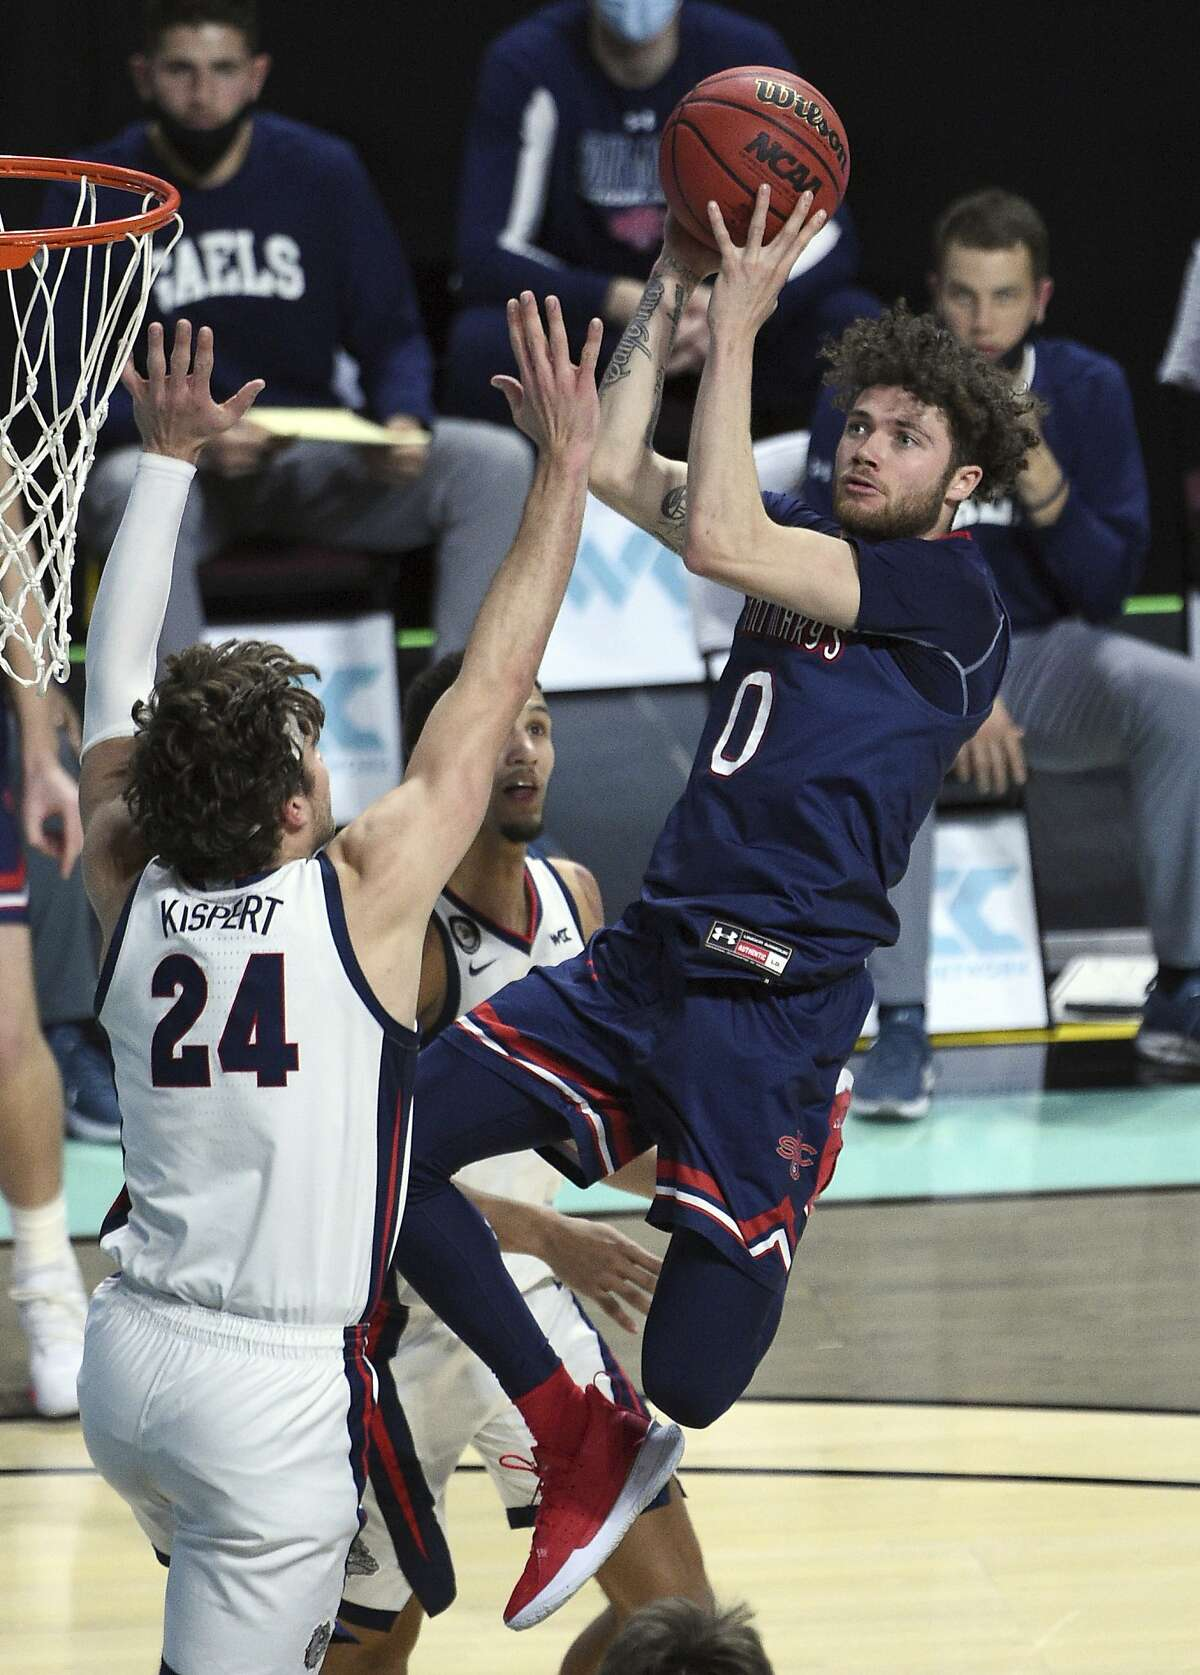 Saint Mary's guard Logan Johnson (0) shoots against Gonzaga forward Corey Kispert during the second half of an NCAA semifinal college basketball game at the West Coast Conference tournament Monday, March 8, 2021, in Las Vegas. (AP Photo/David Becker)